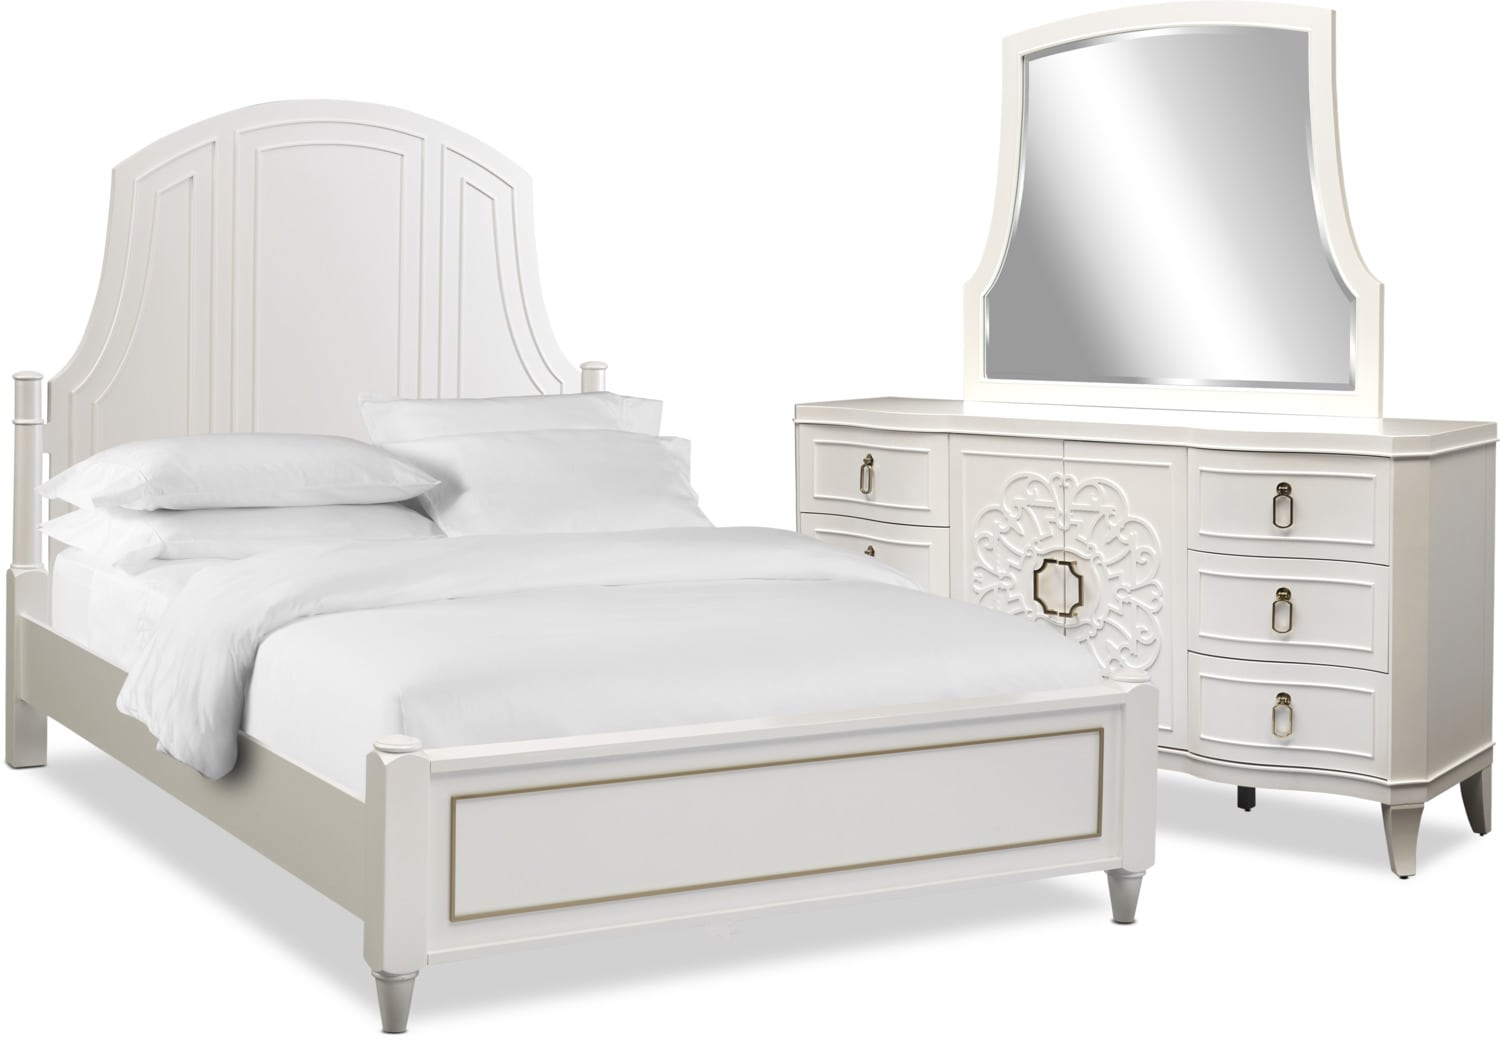 Bedroom Furniture - Isabel 5-Piece Bedroom Set with Dresser and Mirror